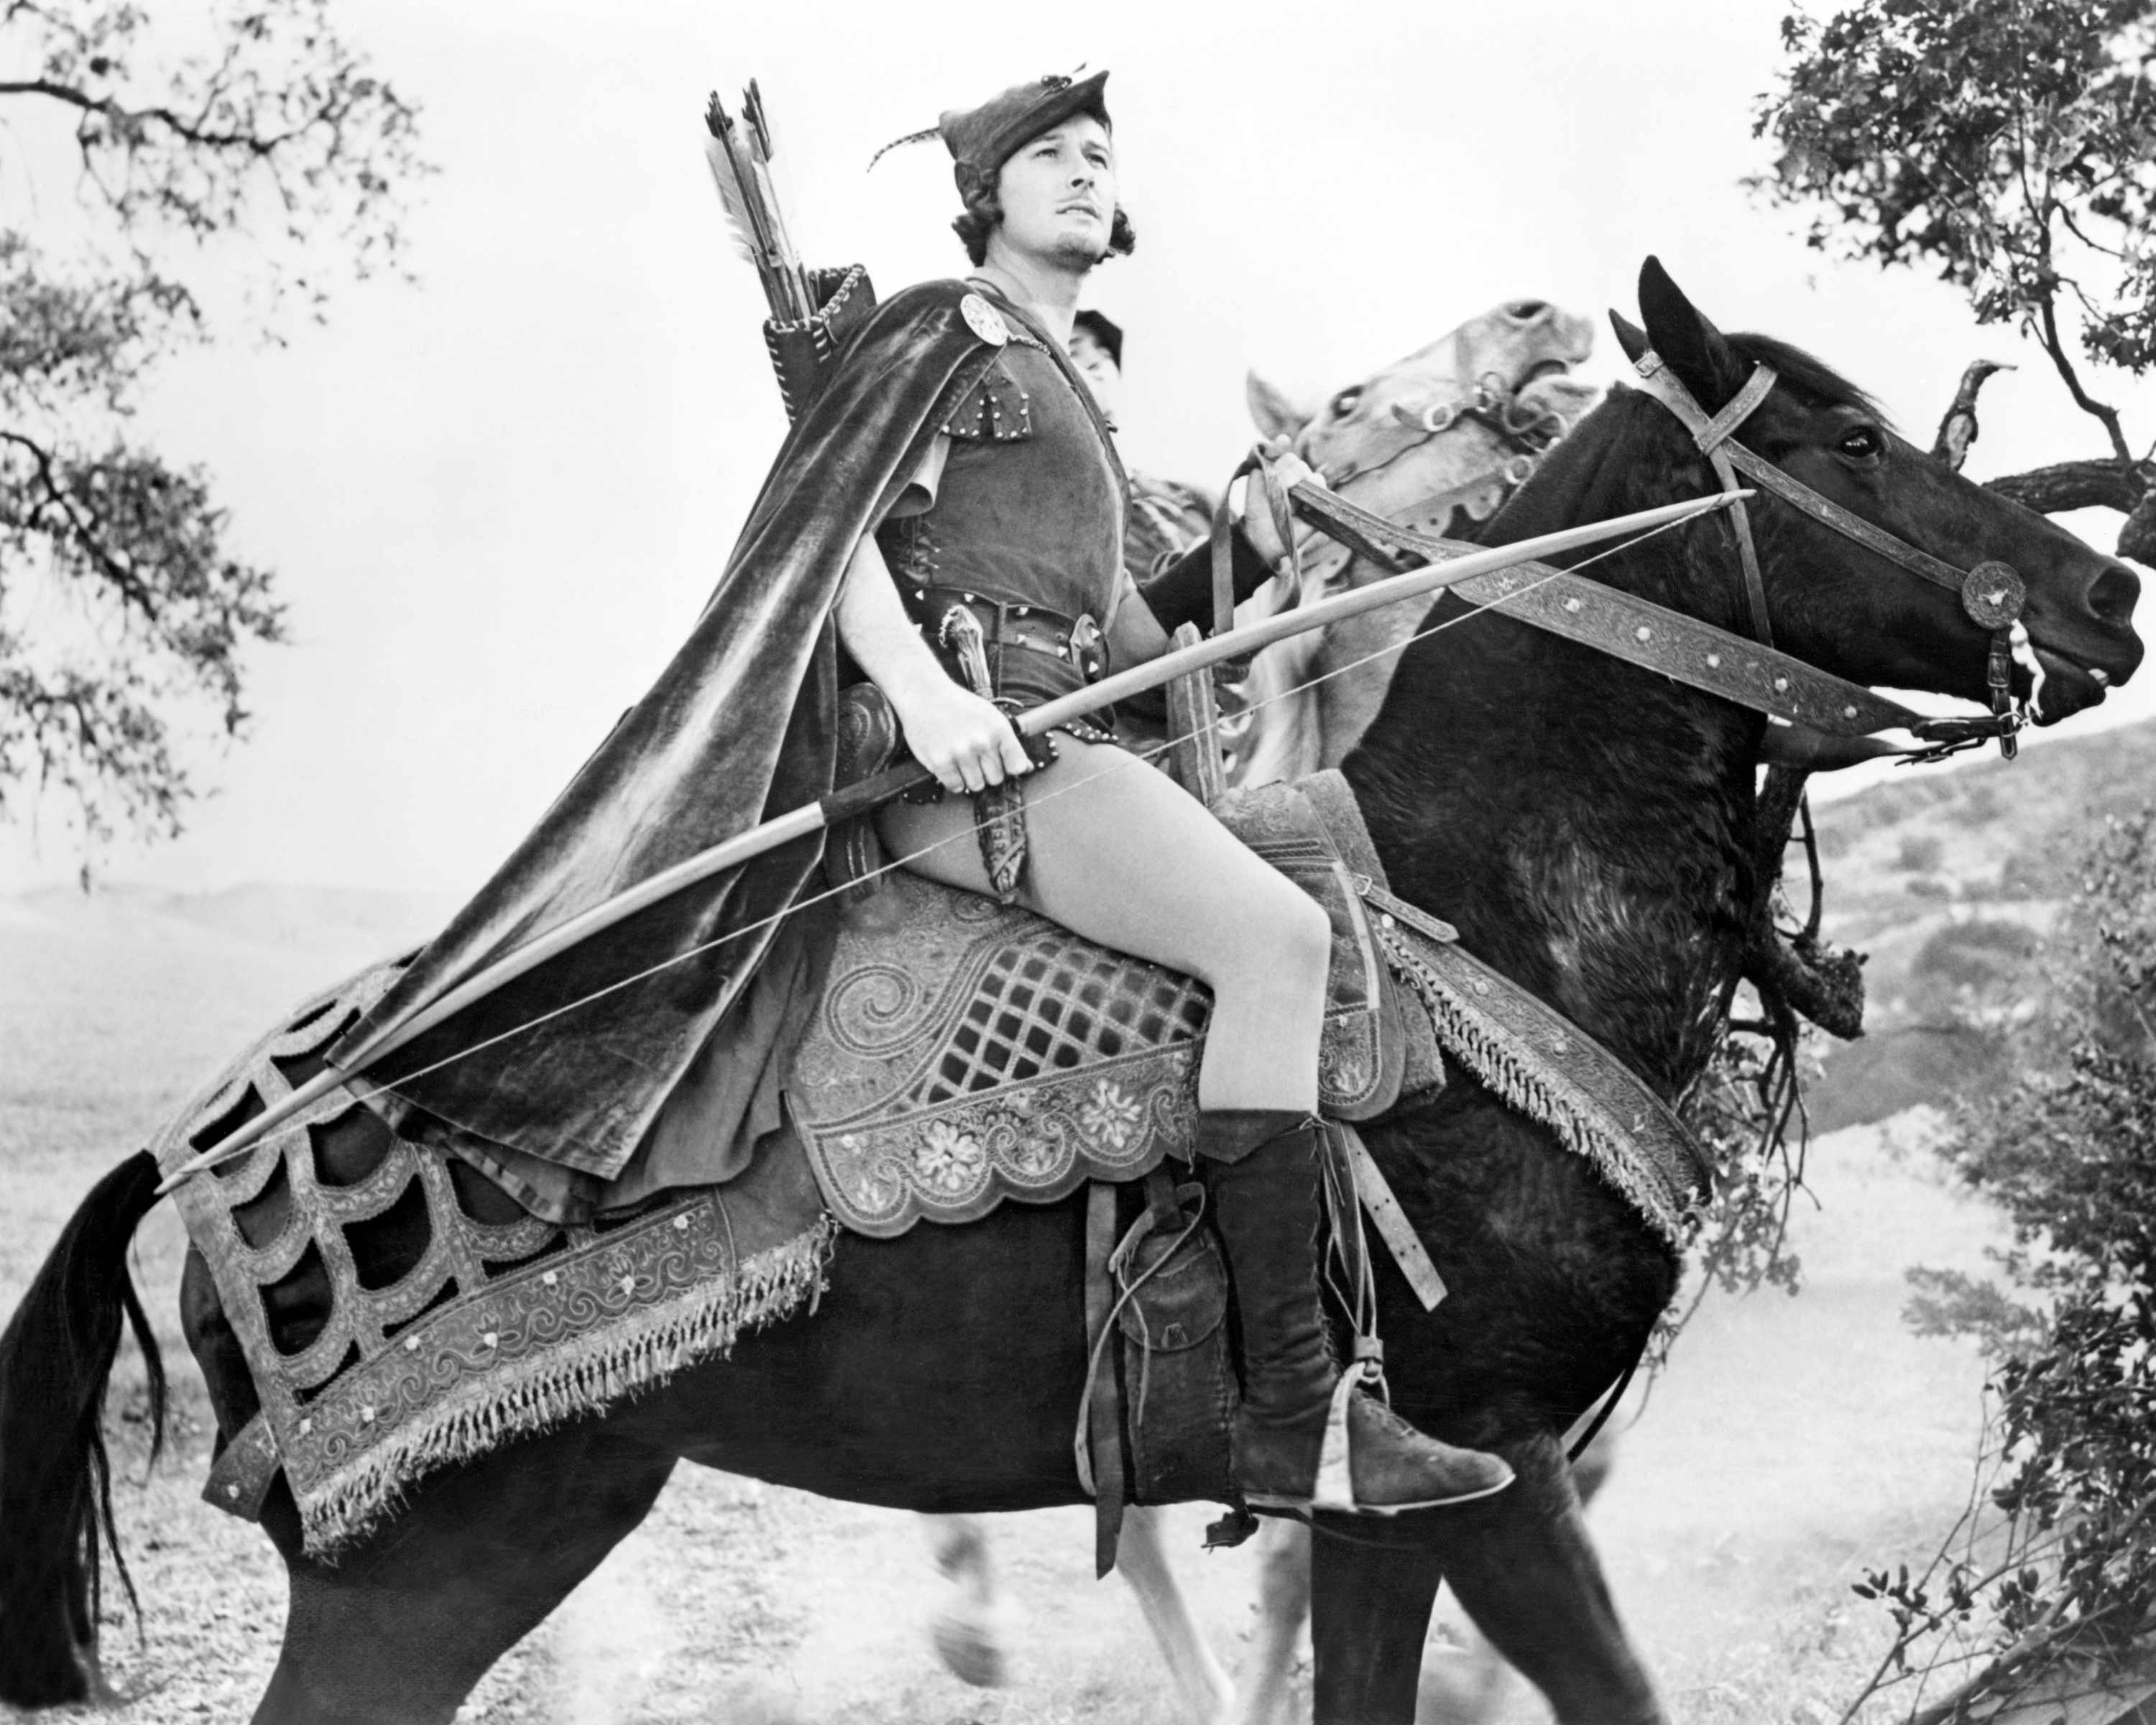 Actor Errol Flynn as Robin Hood in the film 'The Adventures of Robin Hood', 1938. (Photo by Silver Screen Collection/Getty Images)